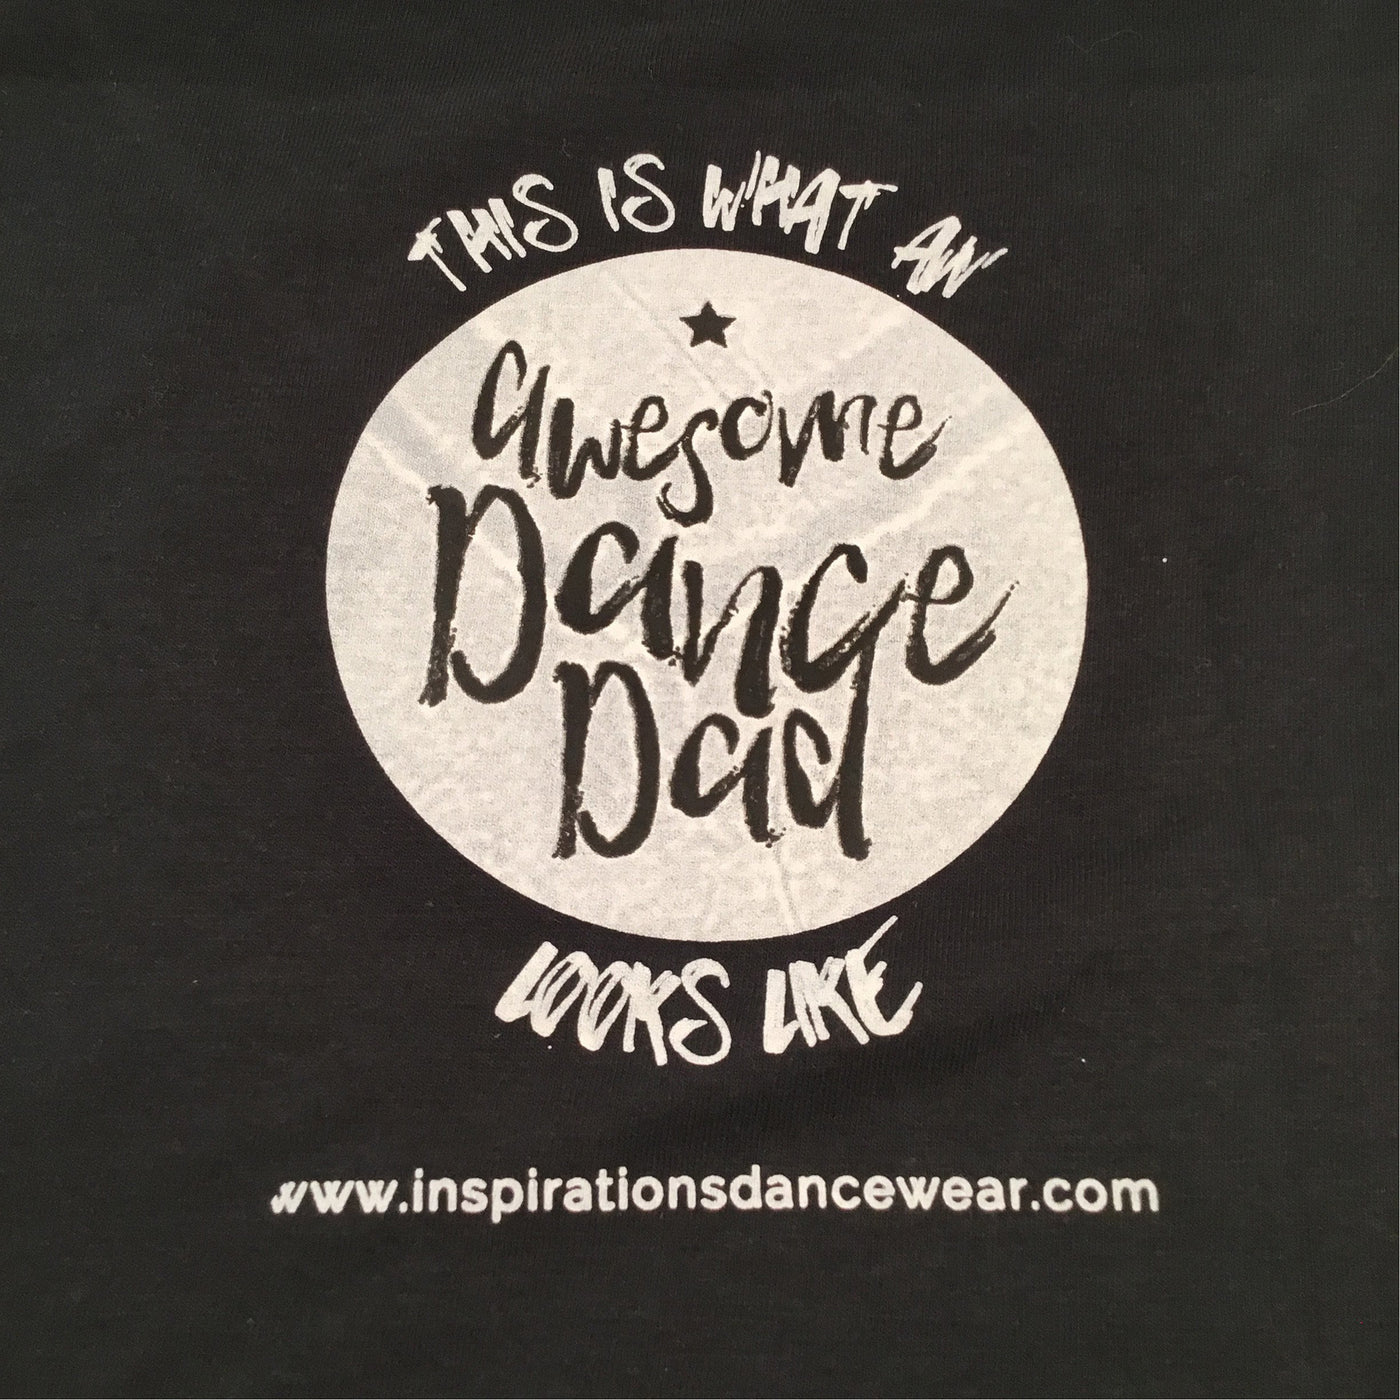 World's Best Dance Dad T-Shirt - Adult